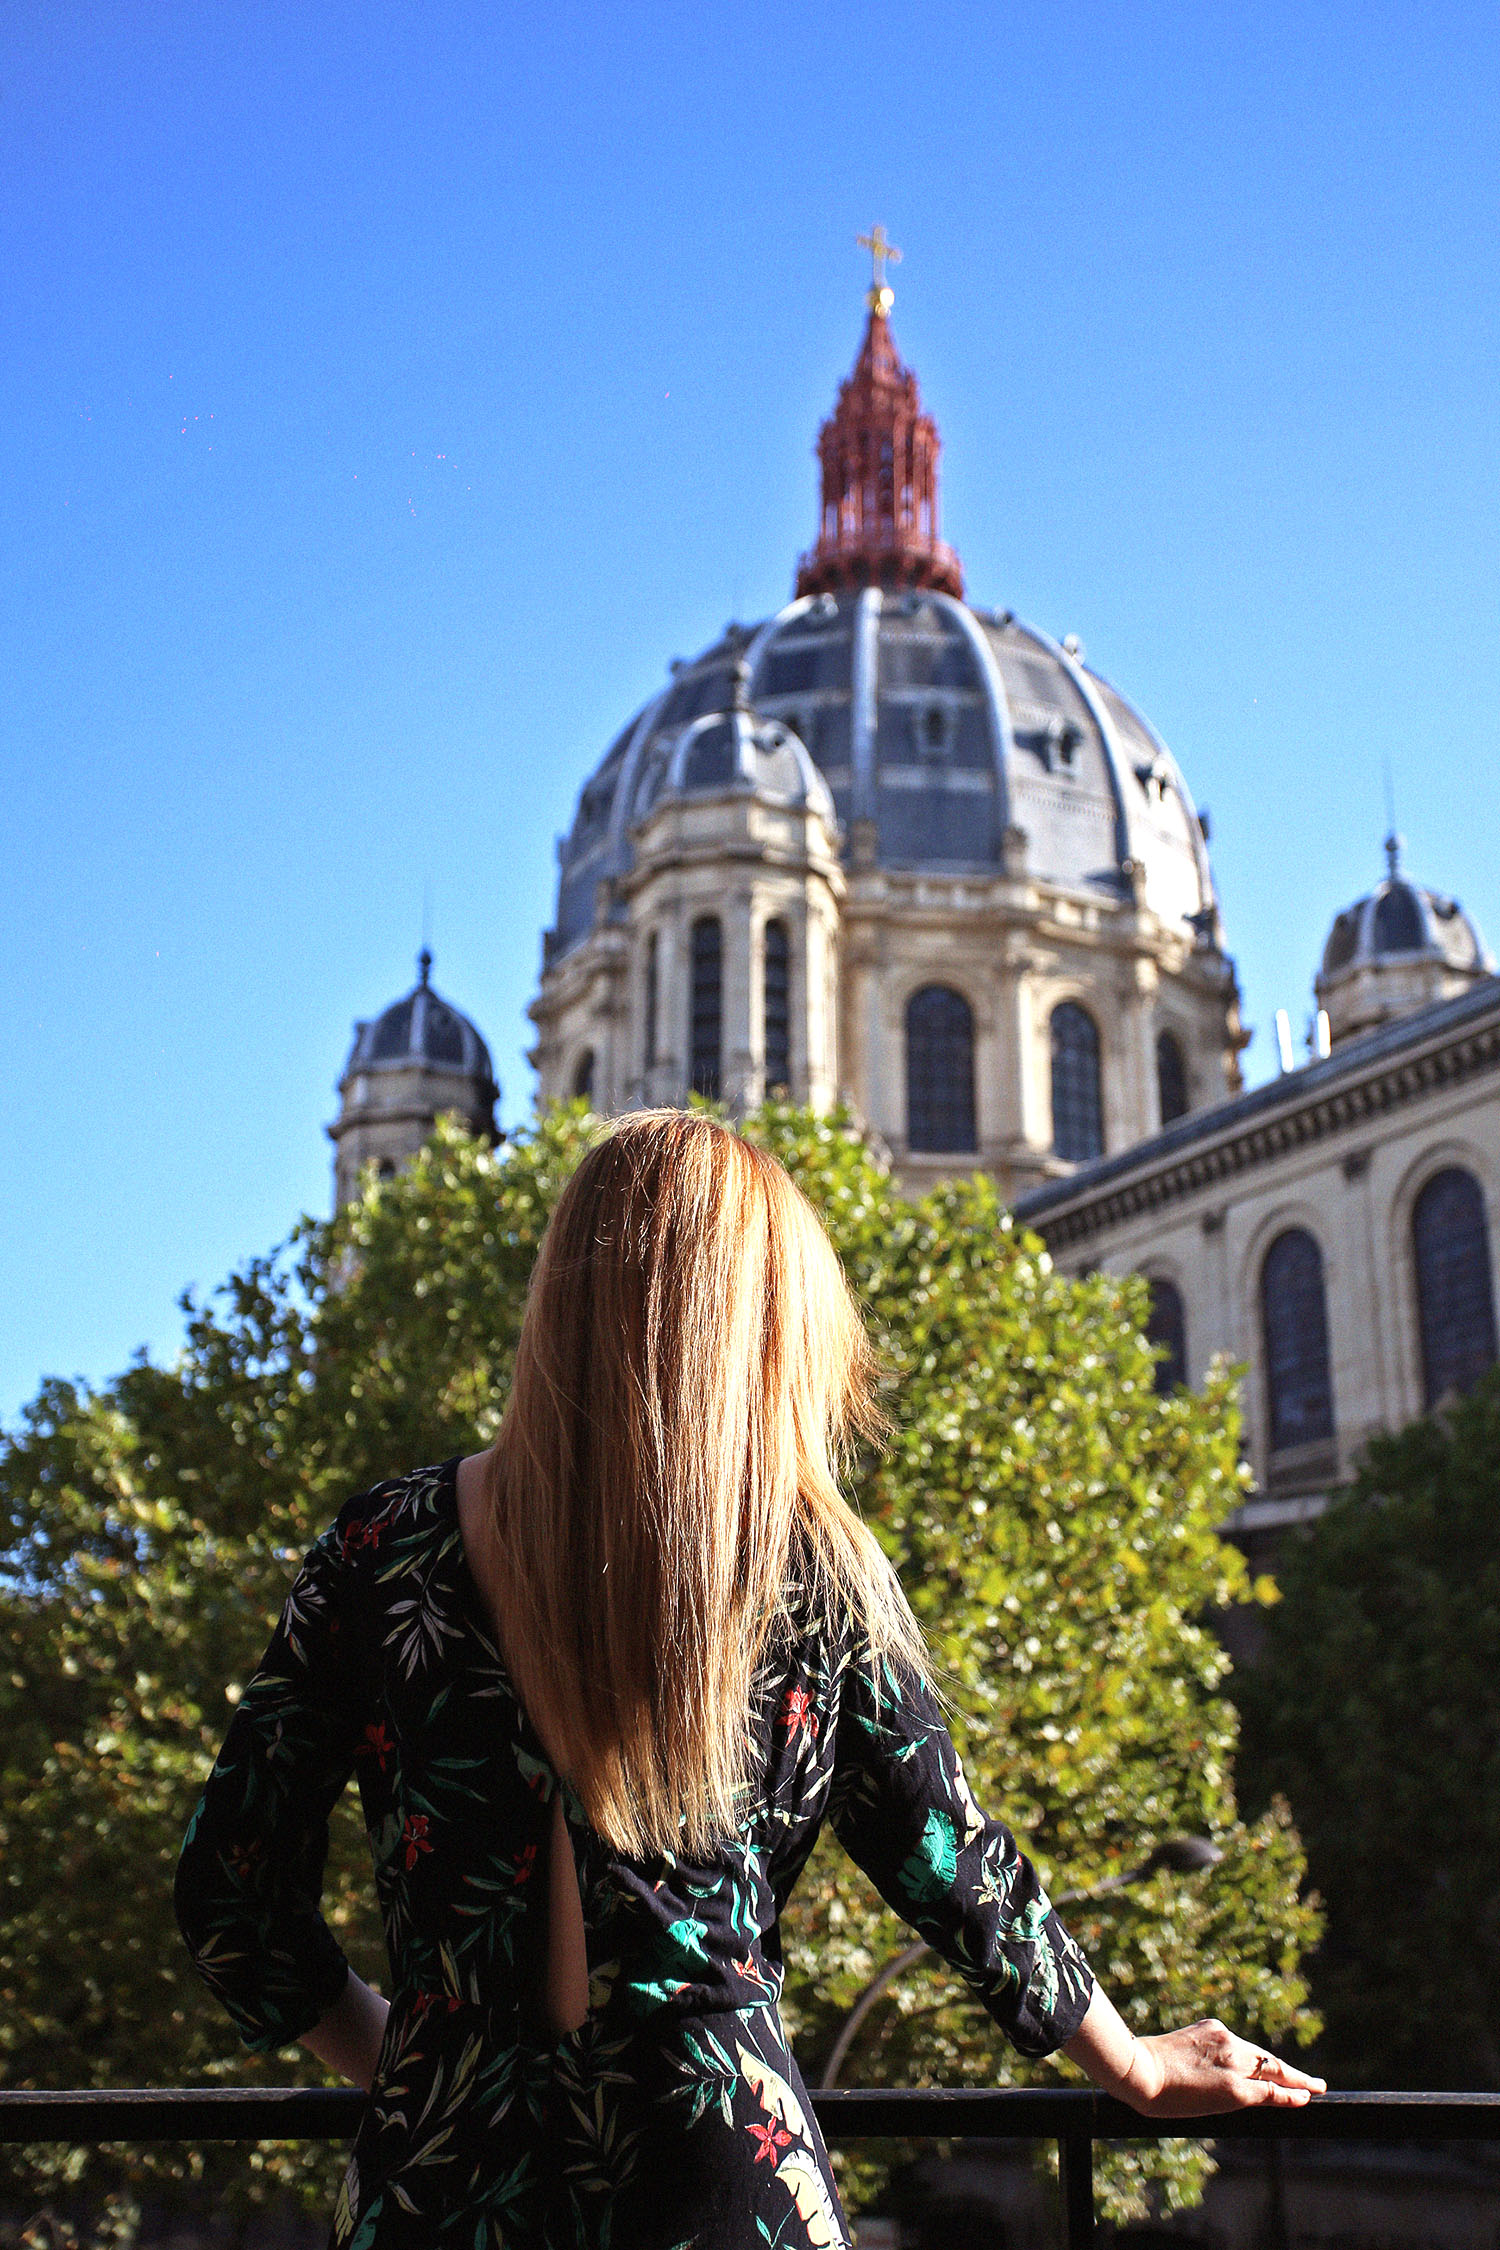 lady-biche-blog-paris-5